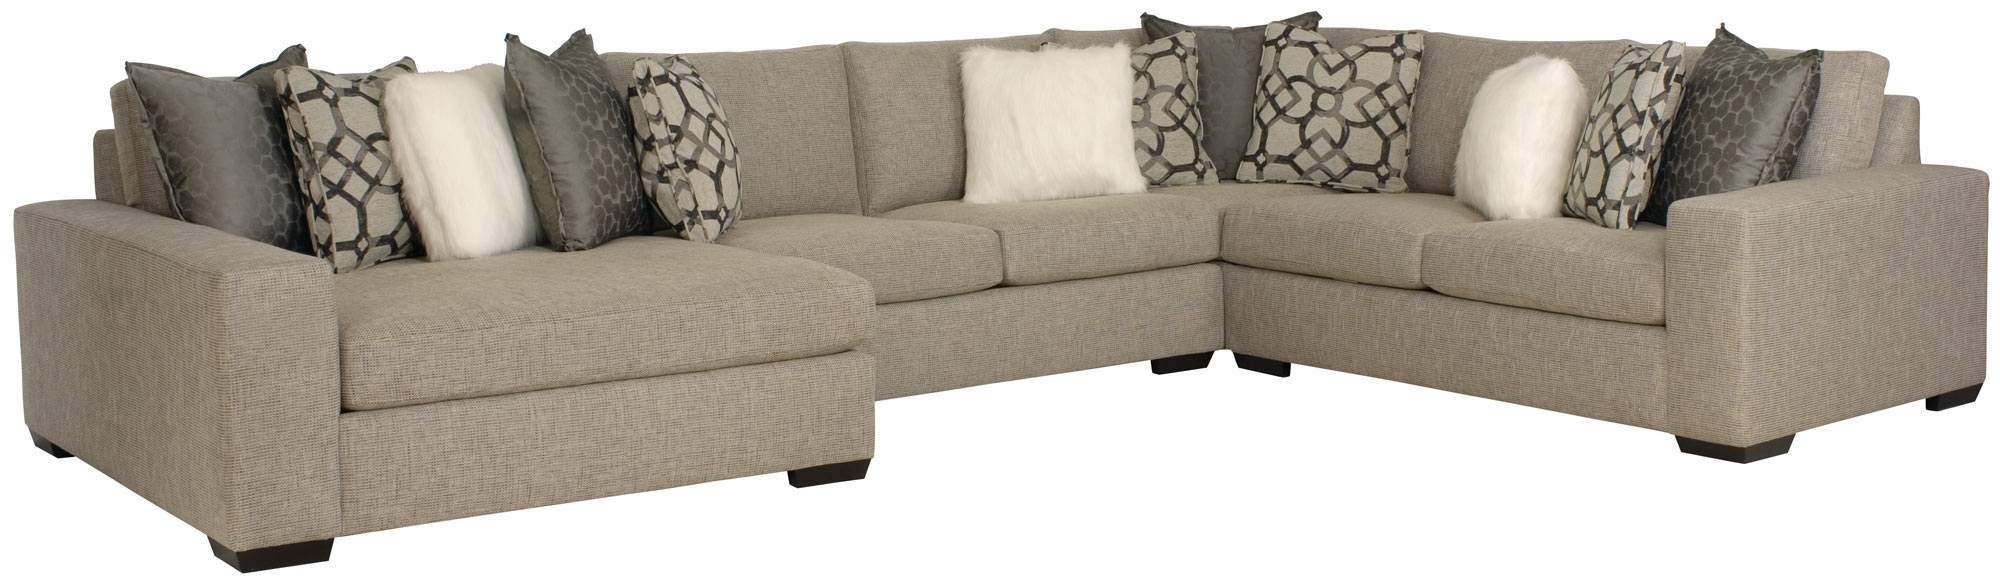 Sectional | Bernhardt Within Orlando Sectional Sofas (Image 6 of 10)